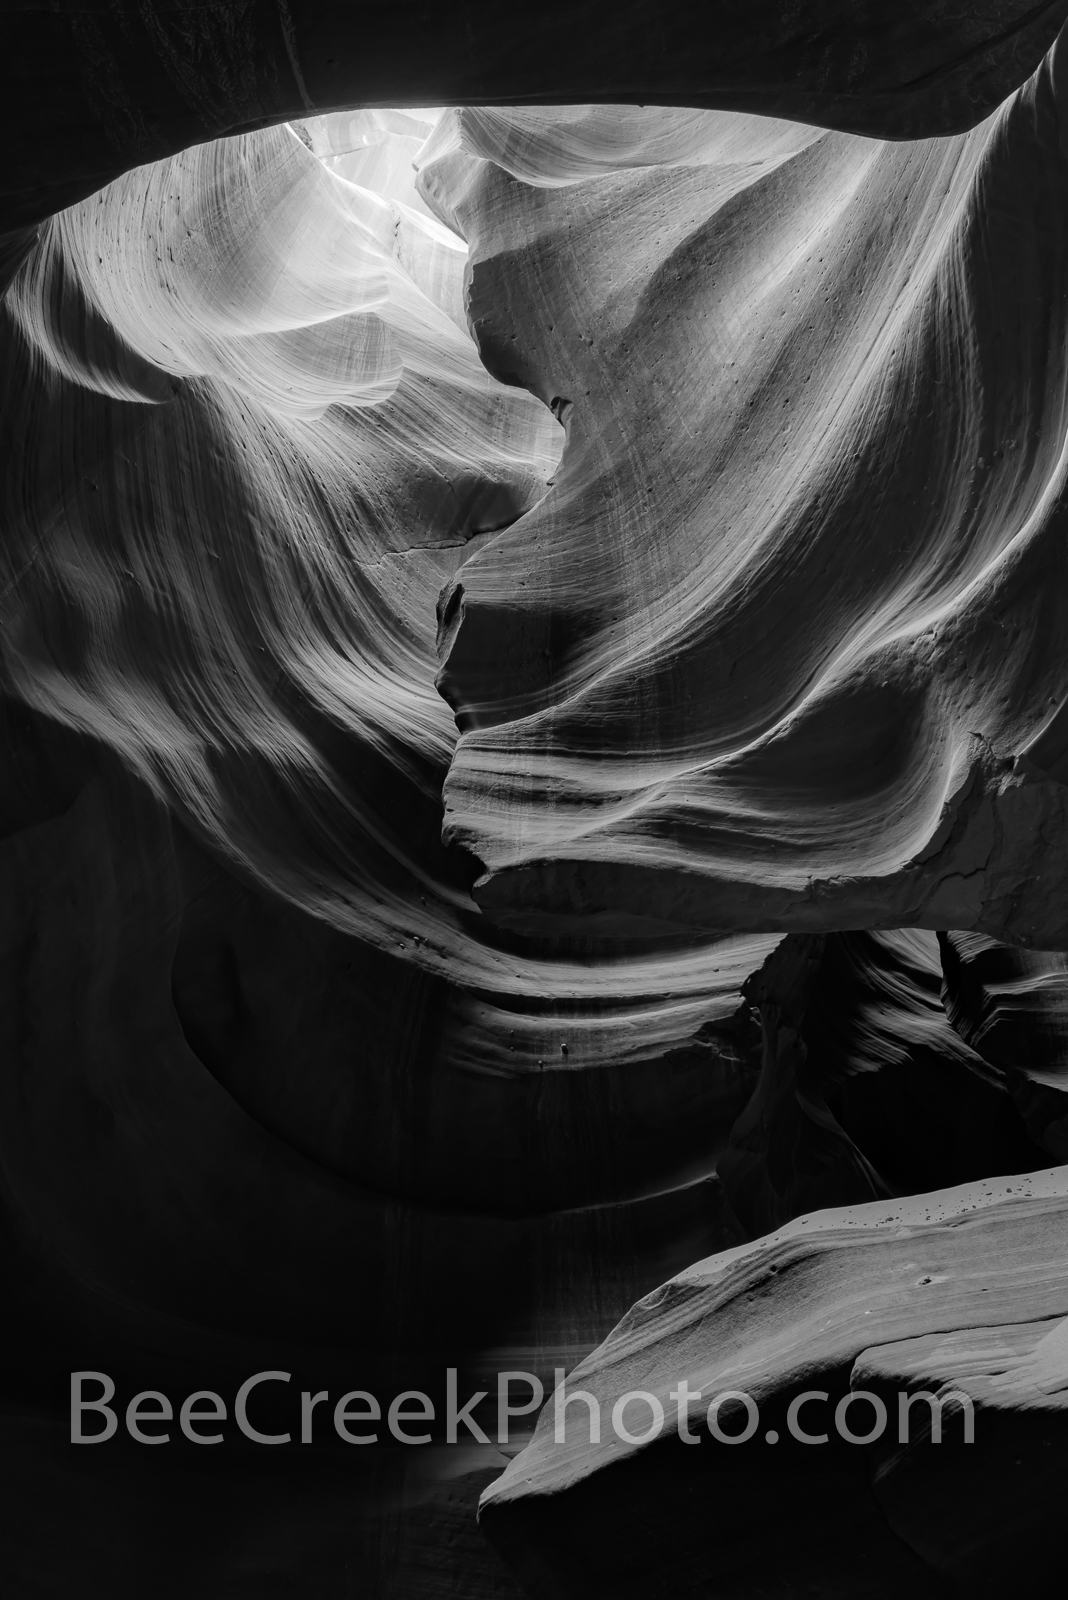 Slot Canyon Abstract BW Vertical - This captures the beauty and mystery of the Antelope Canyons one of the many slot canyons...